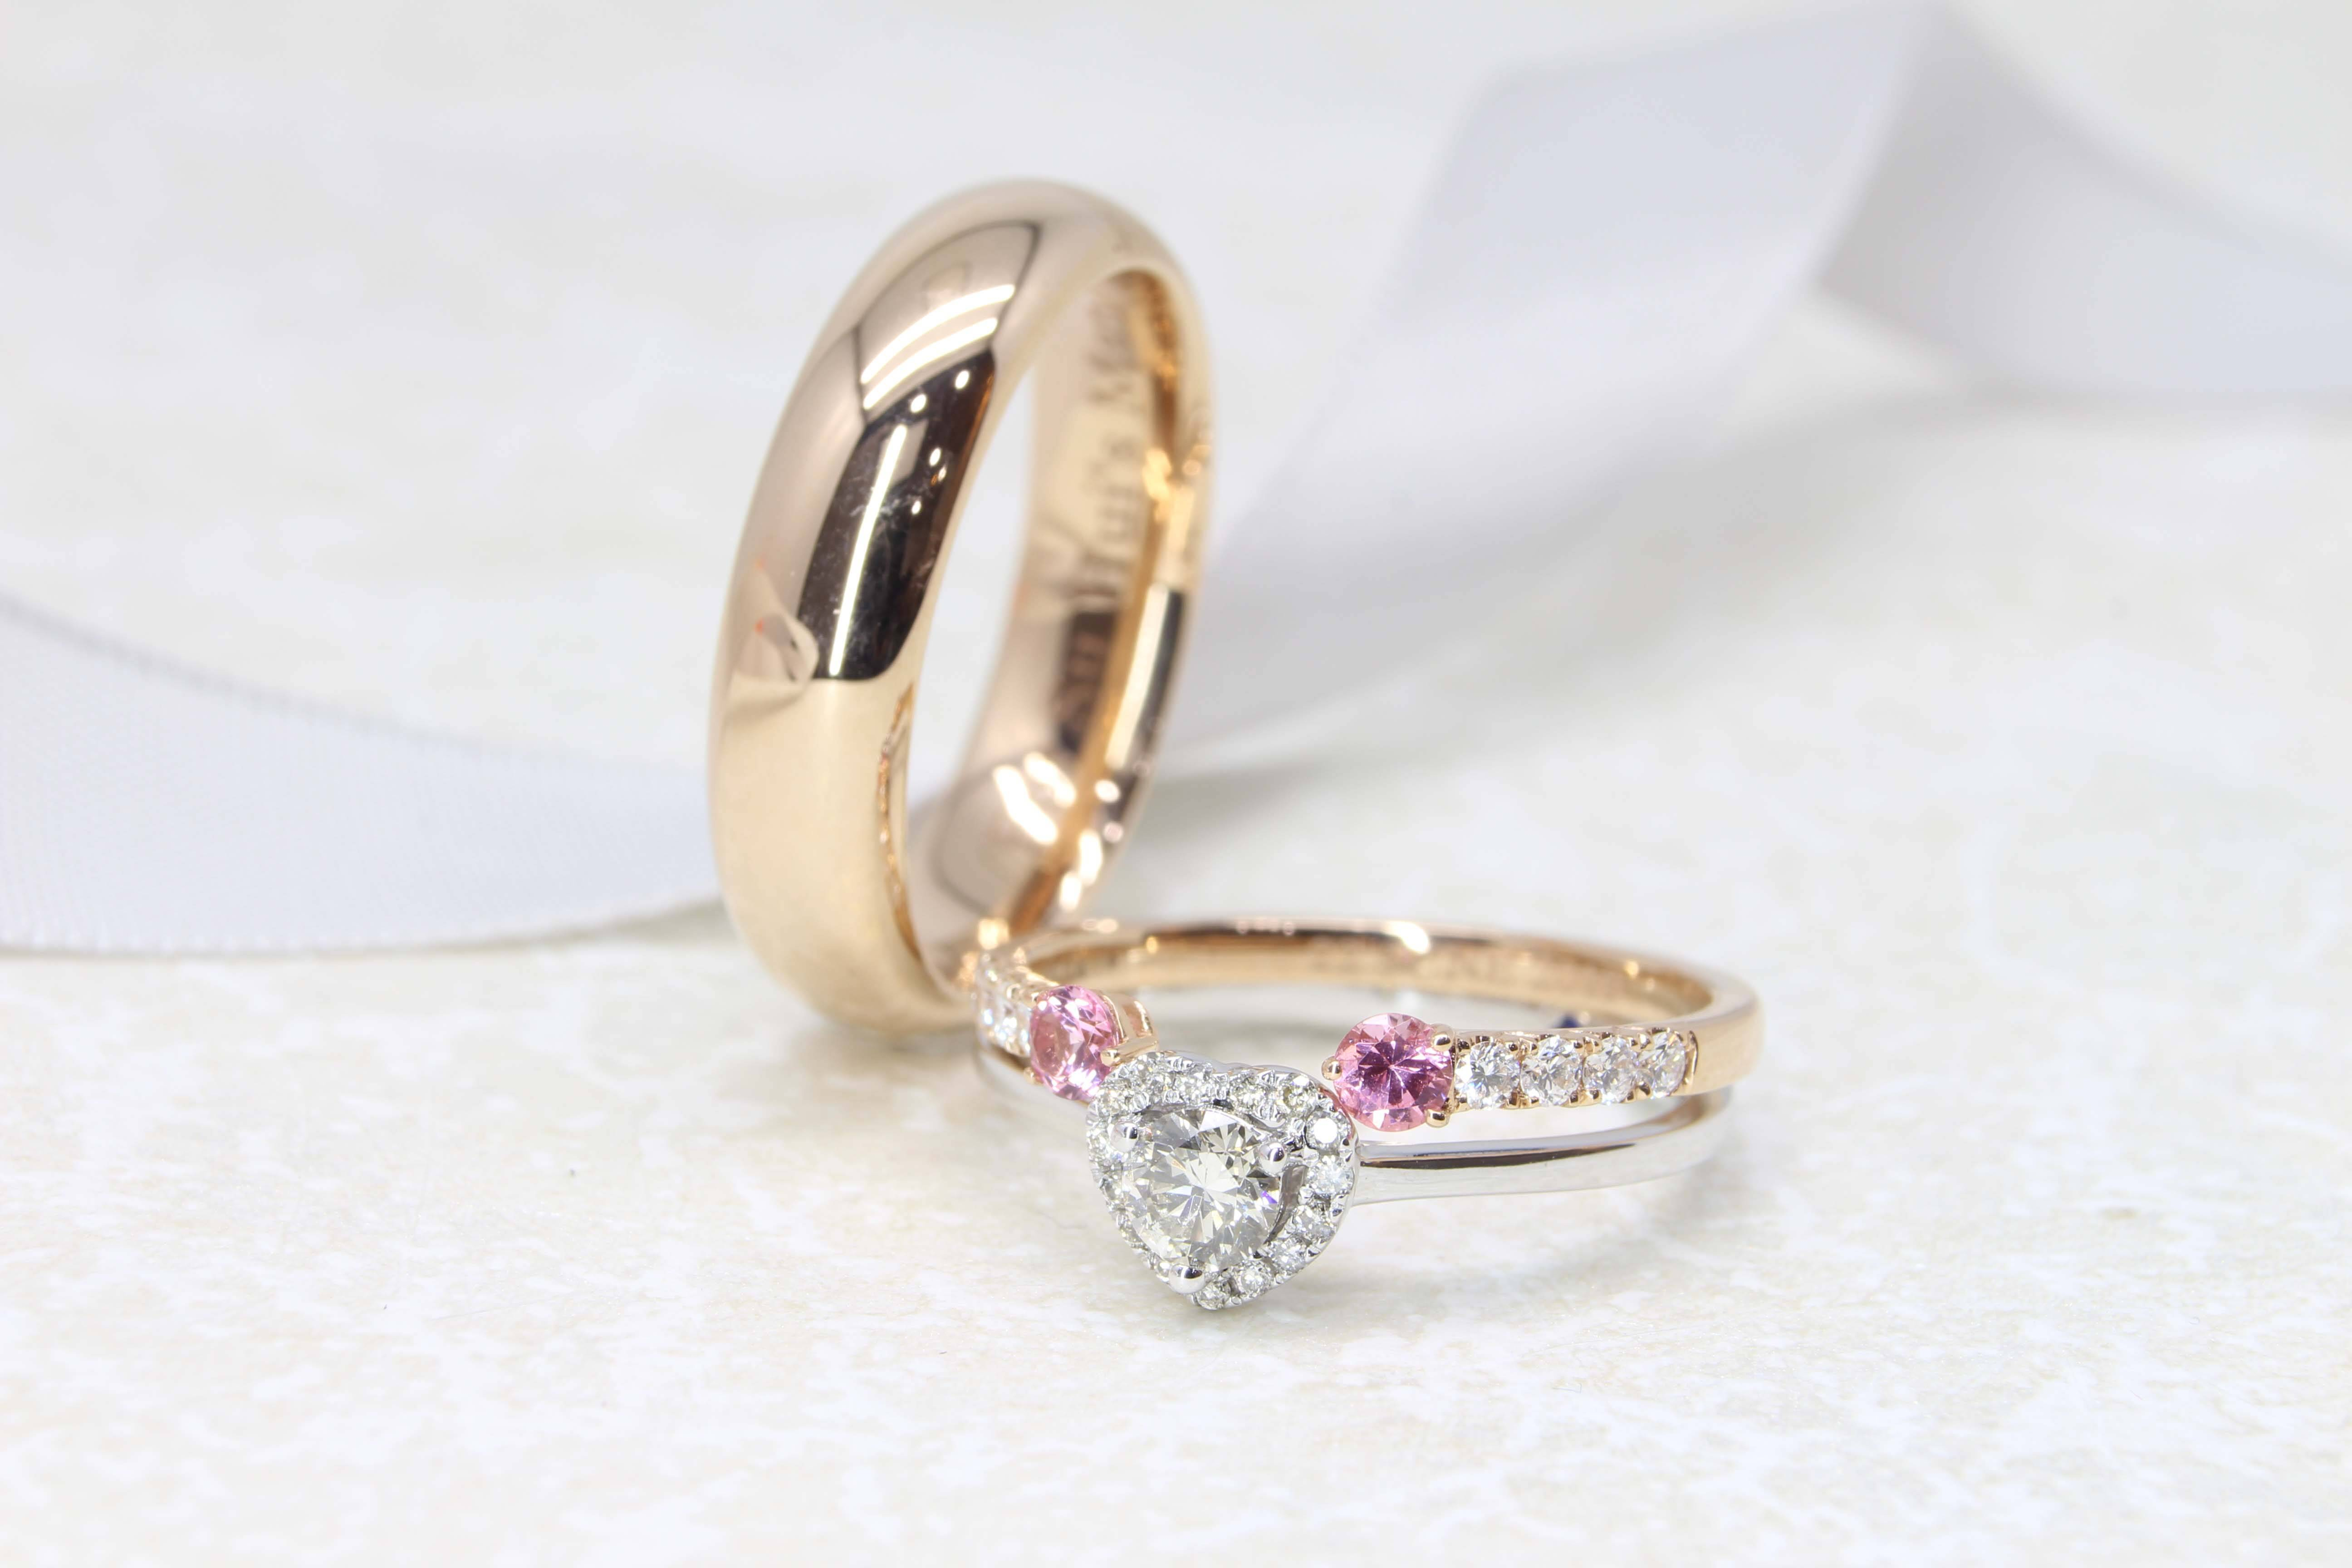 Have your Wedding Bands & Engagement Ring customised to stack and complement to each other in design - Customised Wedding Rings with coloured gemstones and diamond | Local Singapore Bespoke Jeweller in Wedding bands and Engagement Ring